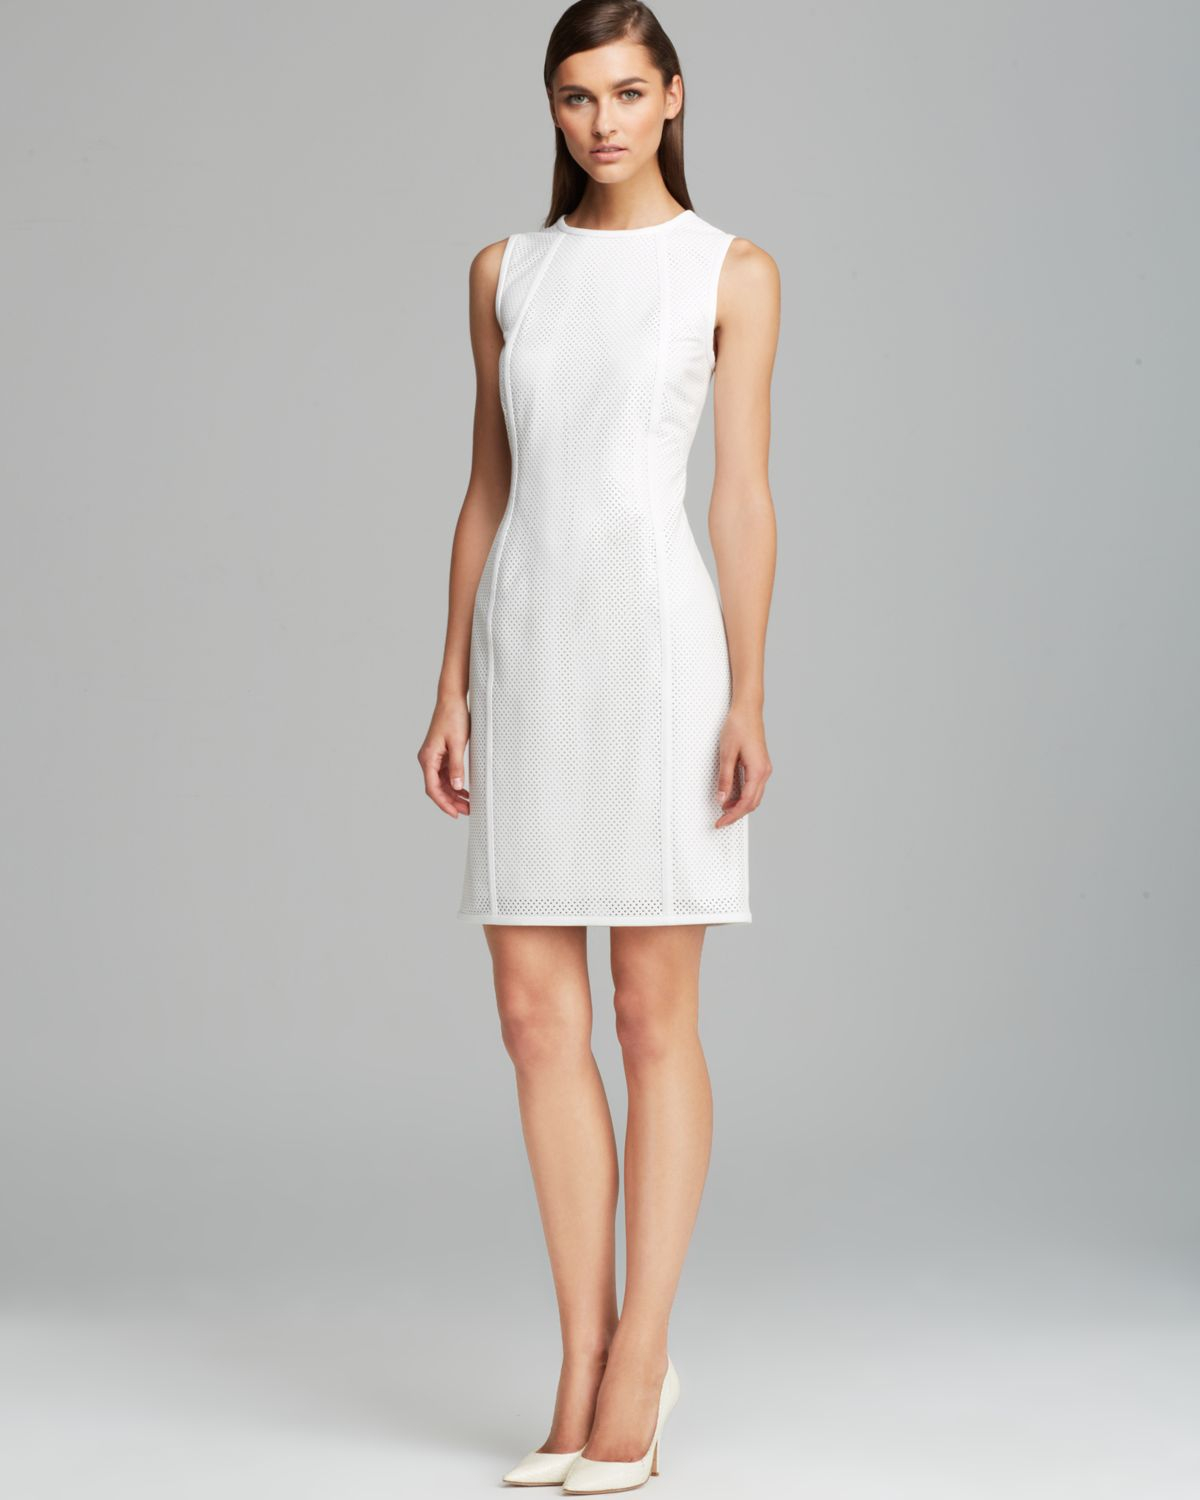 Calvin Klein Perforated Faux Leather Dress In White Lyst